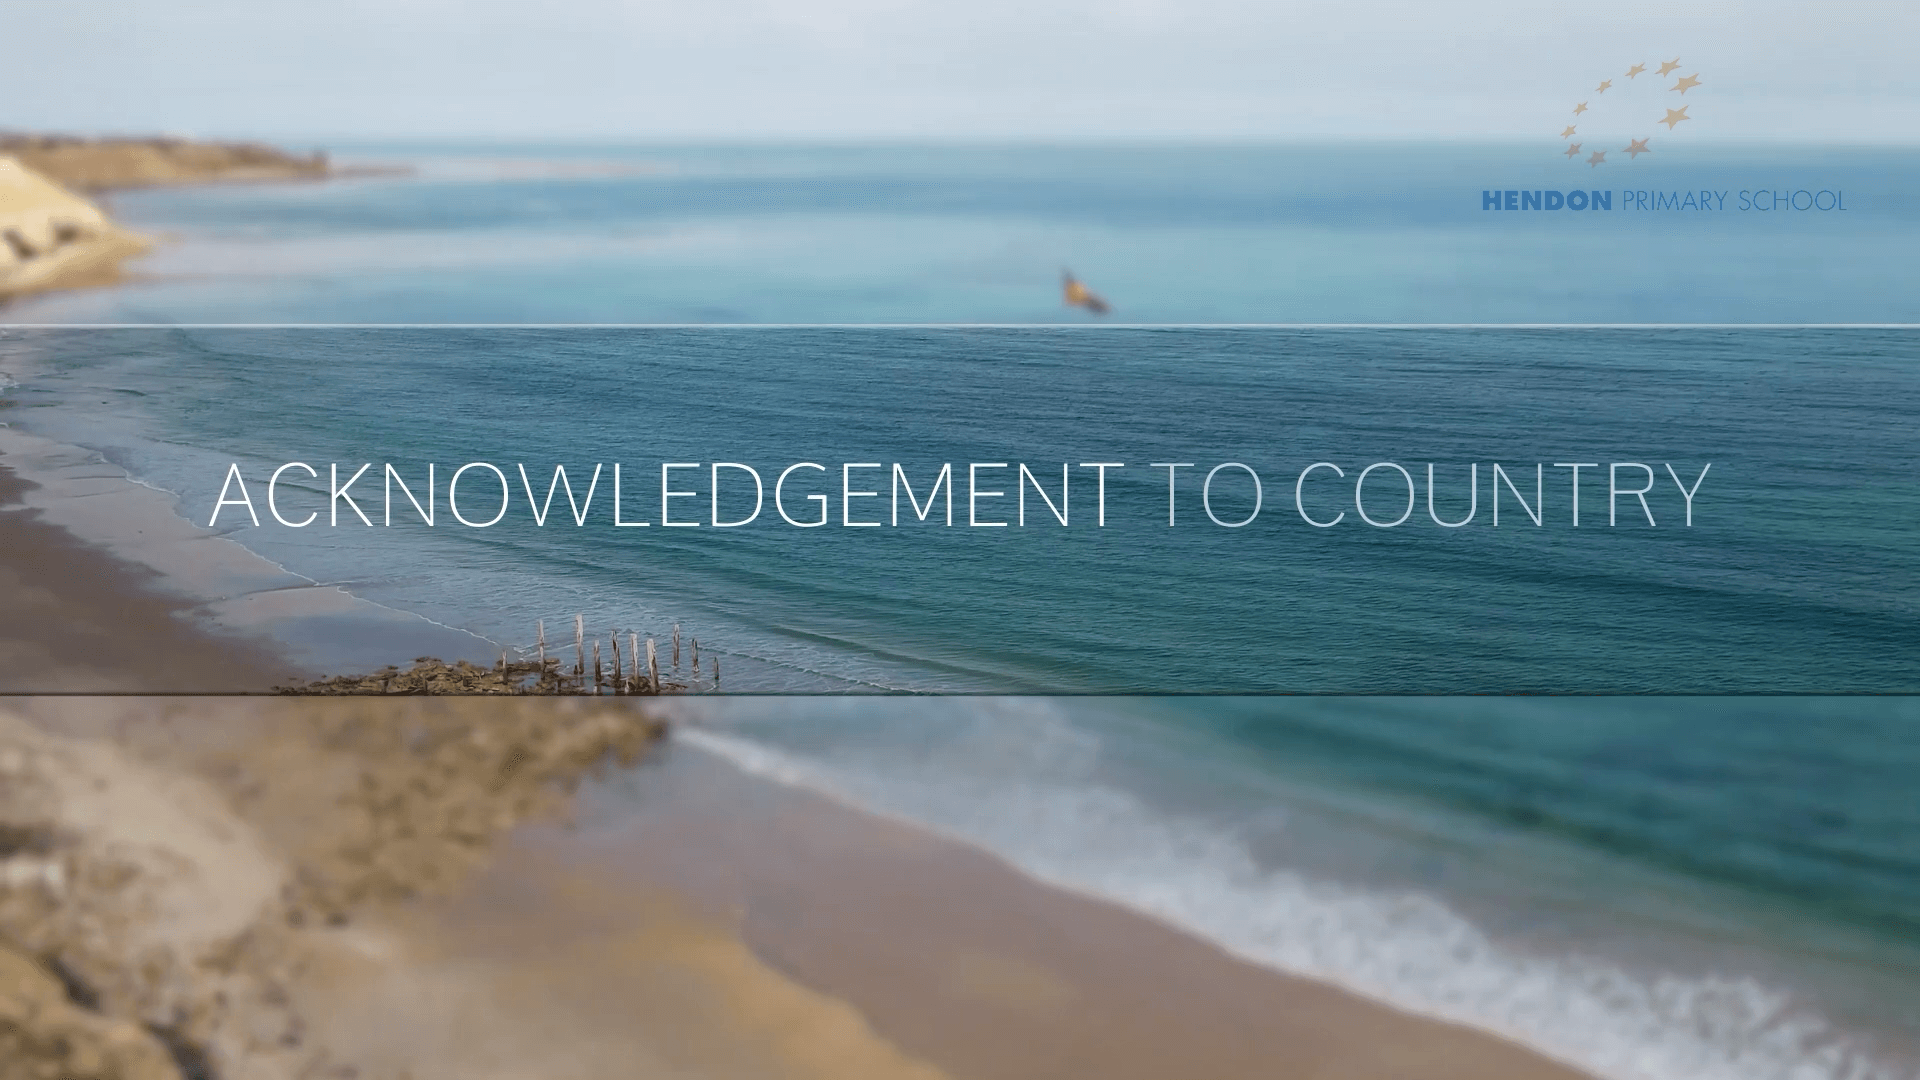 Image Cover for Acknowledgement to Country Video